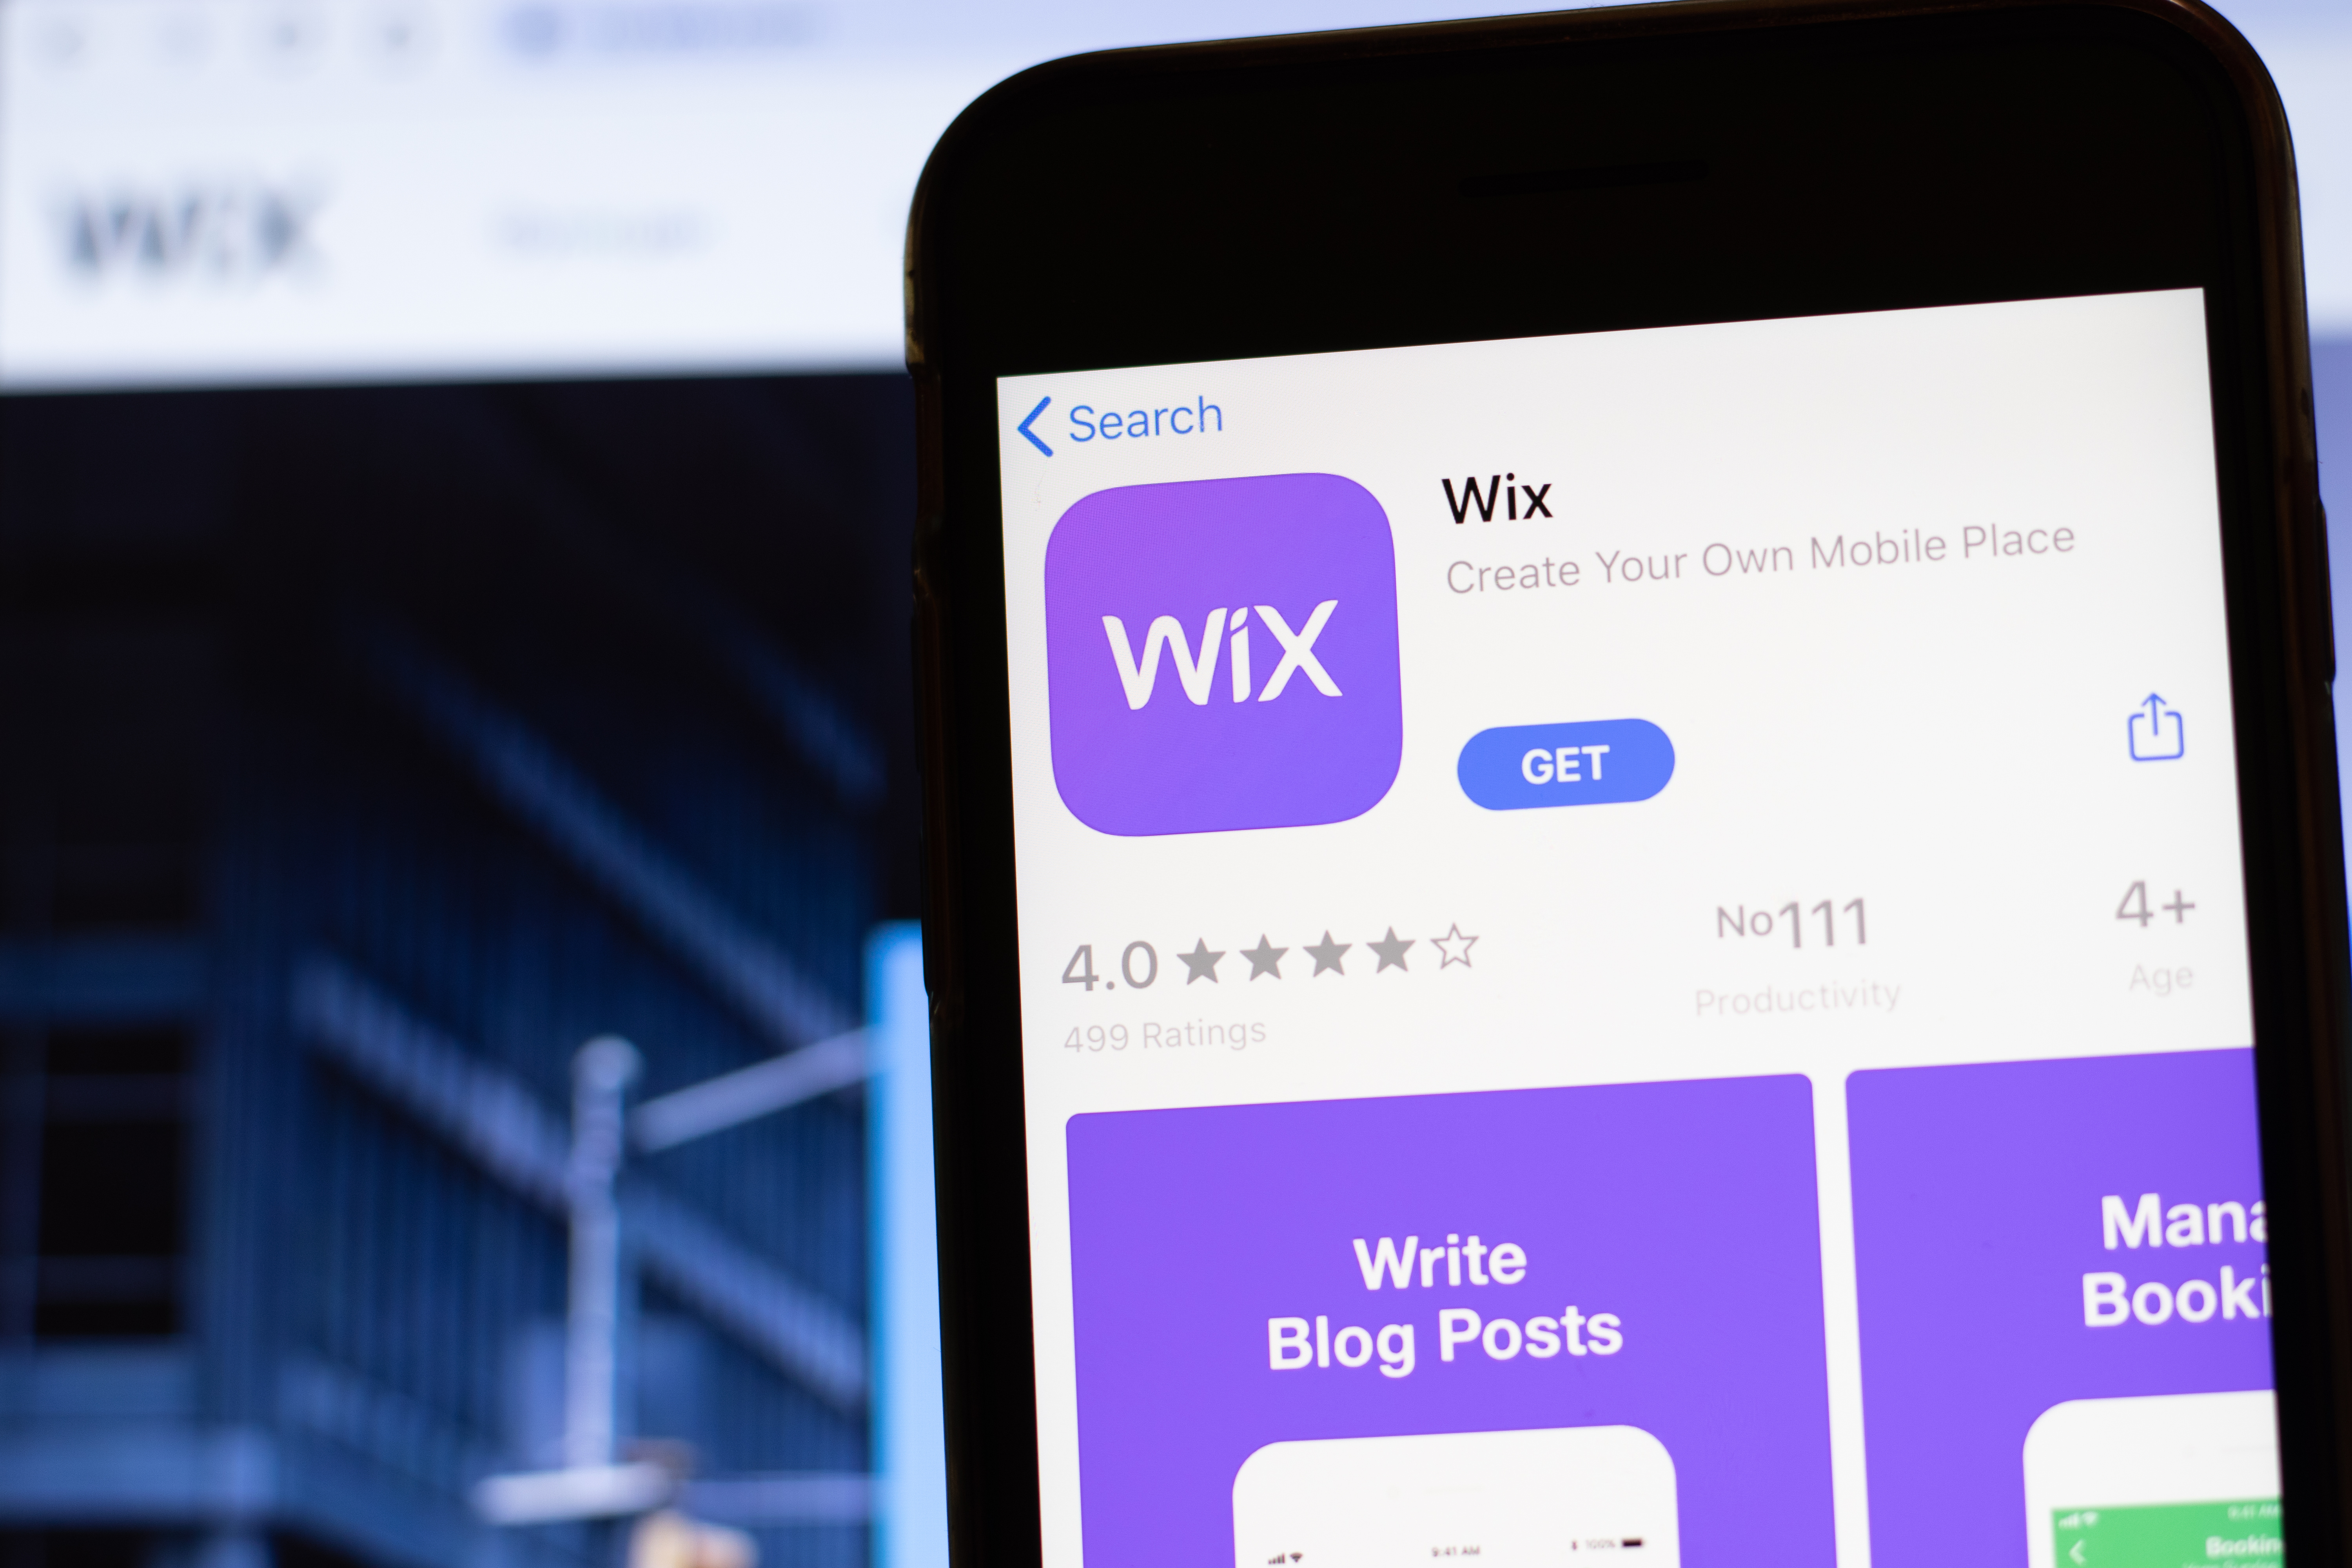 Dogecoin and Other Cryptos Now Accepted by Wix's E-Commerce Platform